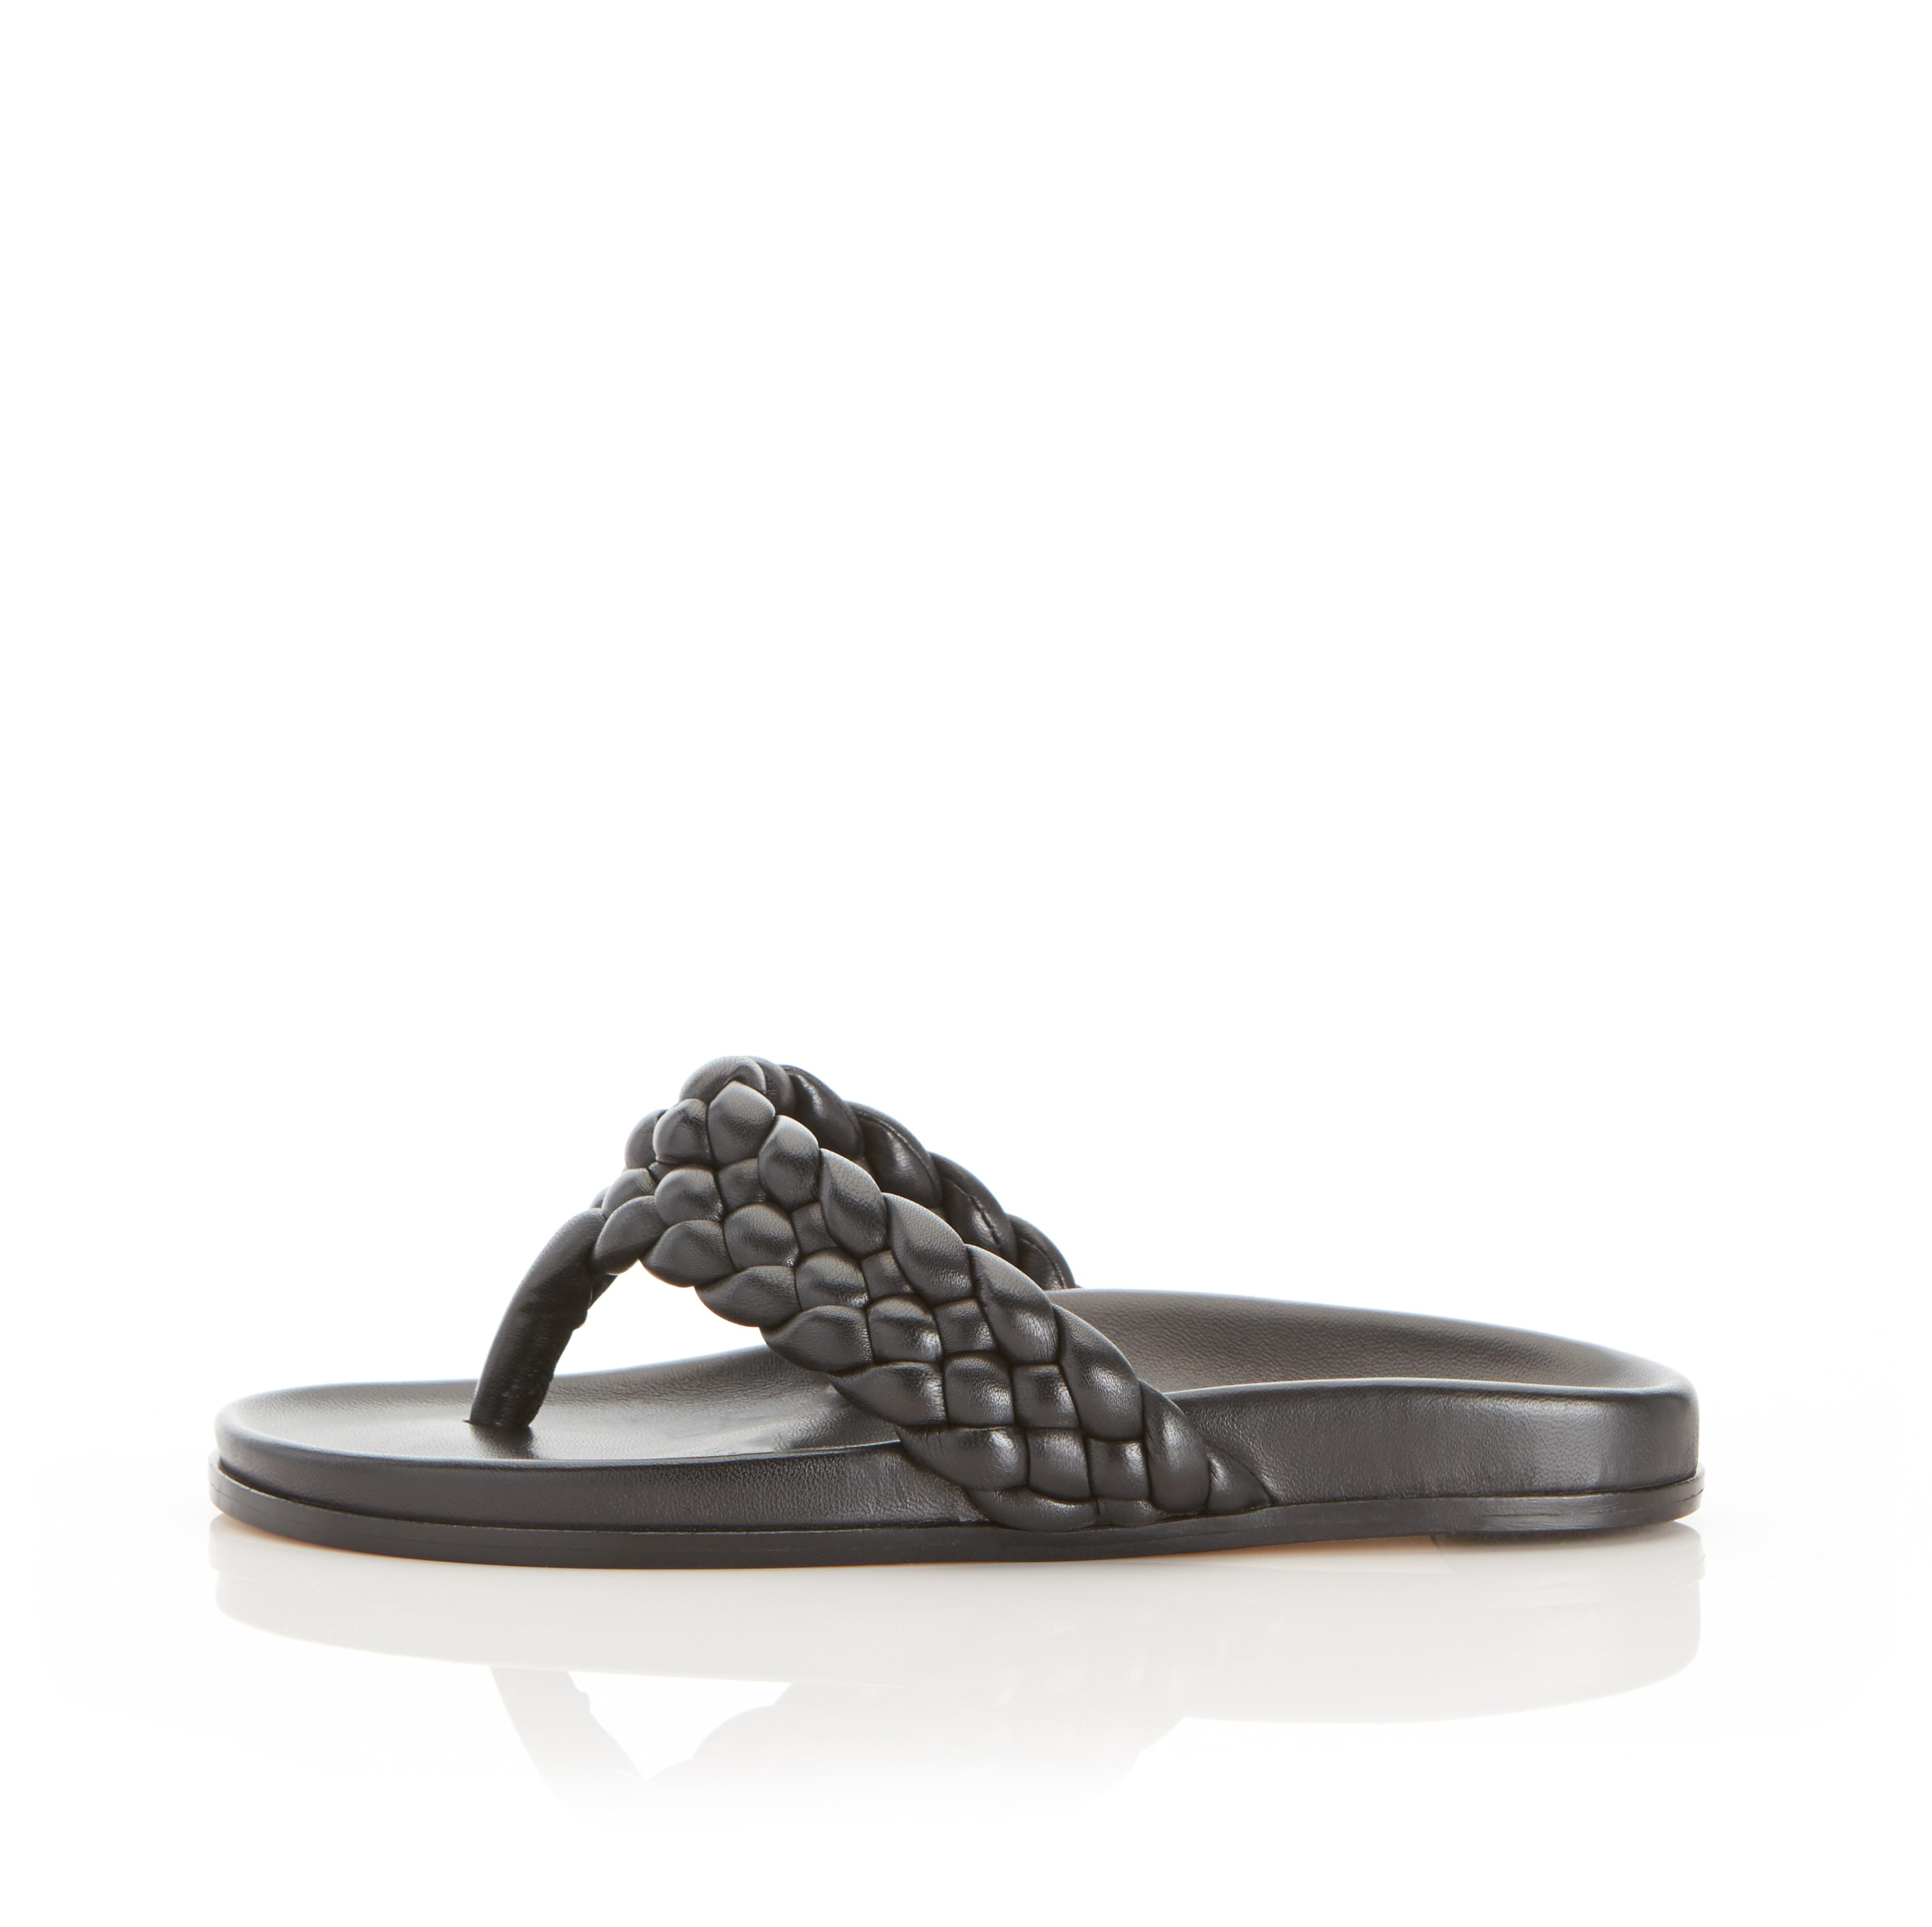 Carly | Braided Leather Thong Sandal with Contoured Footbed